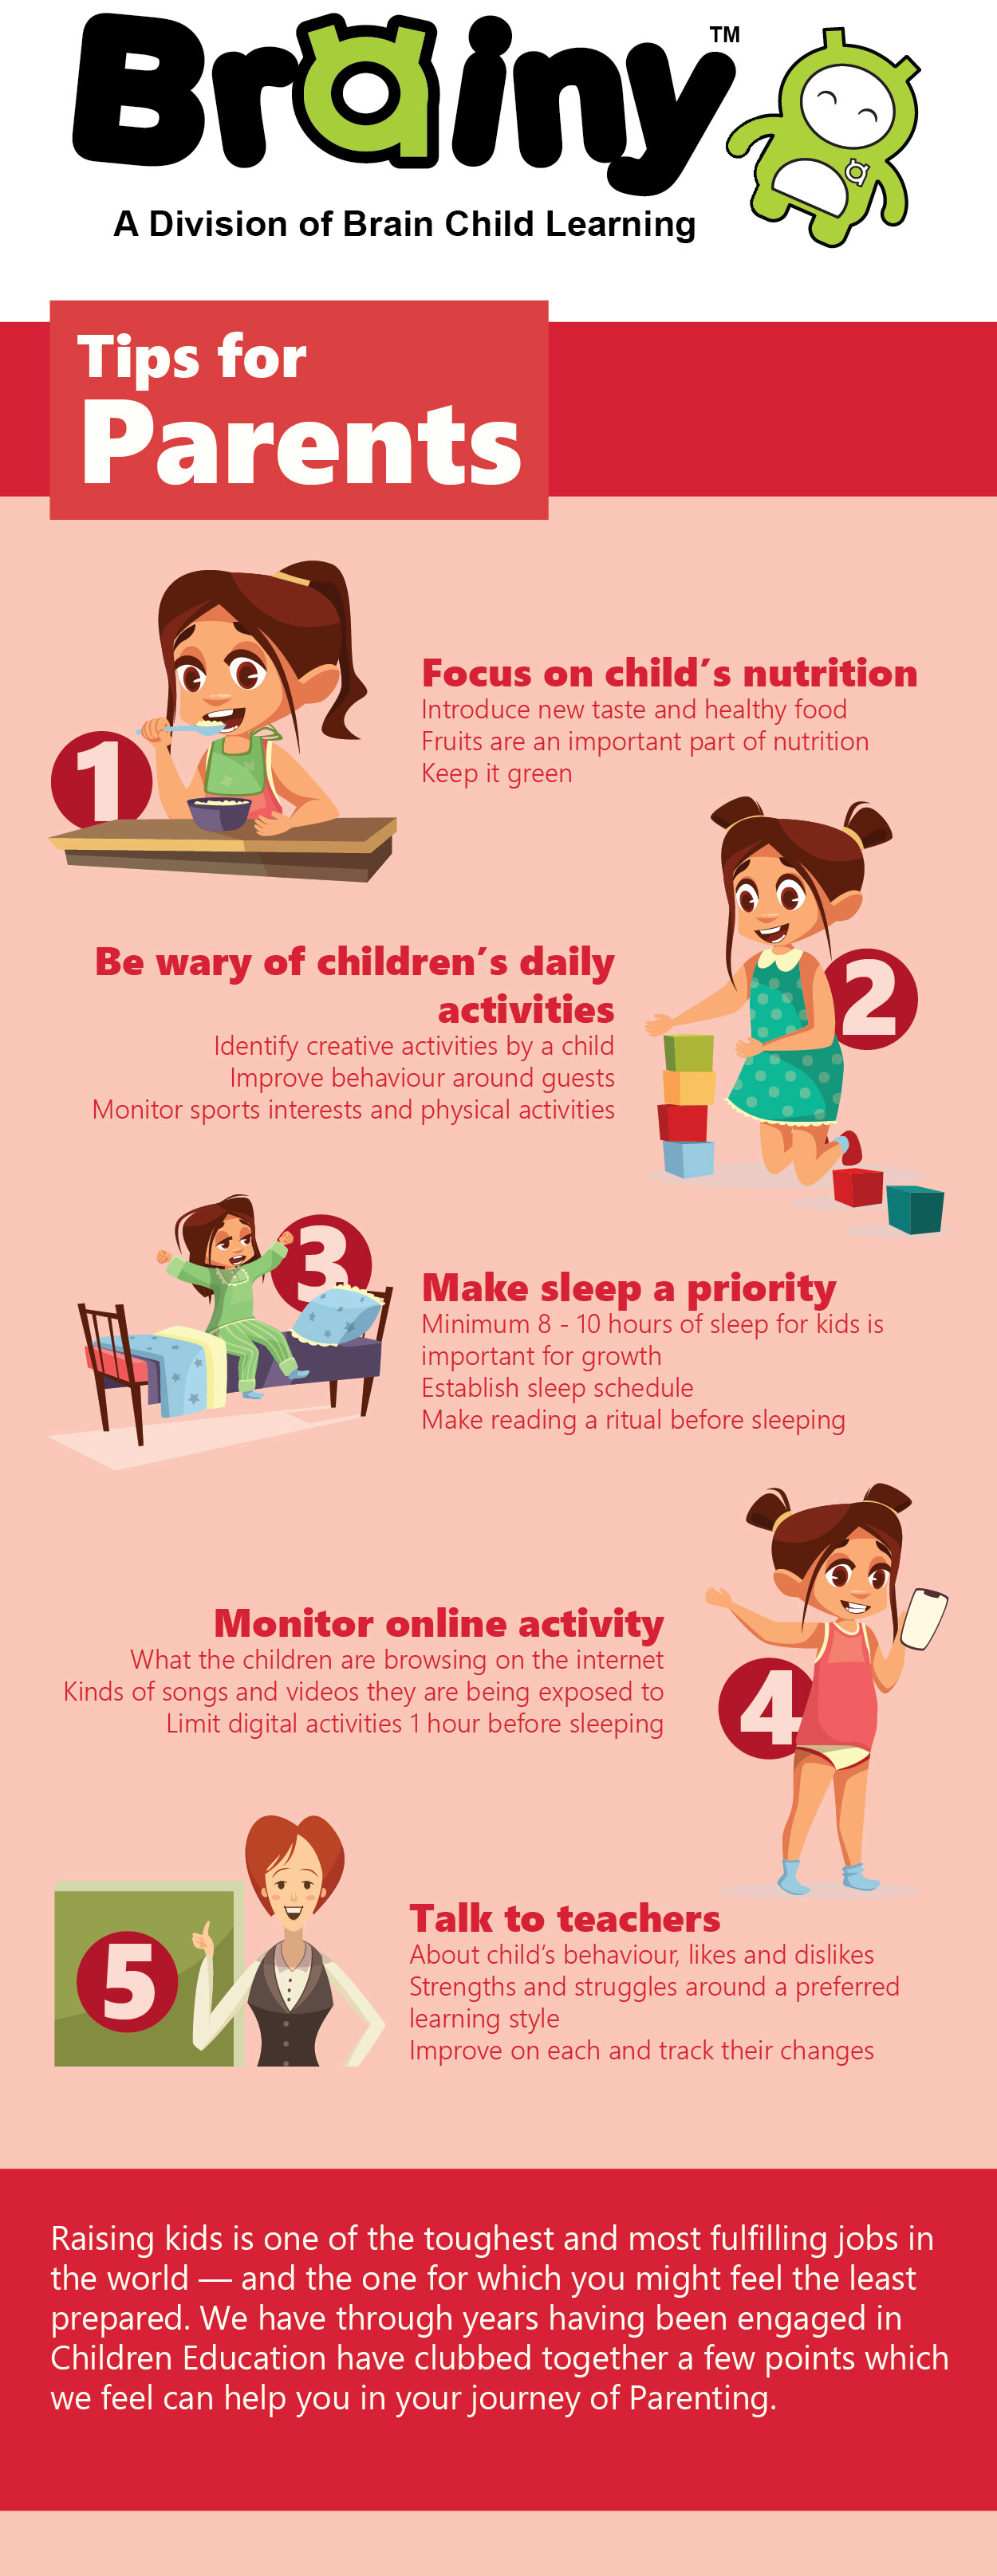 Infographic on tips for parents to better parenting